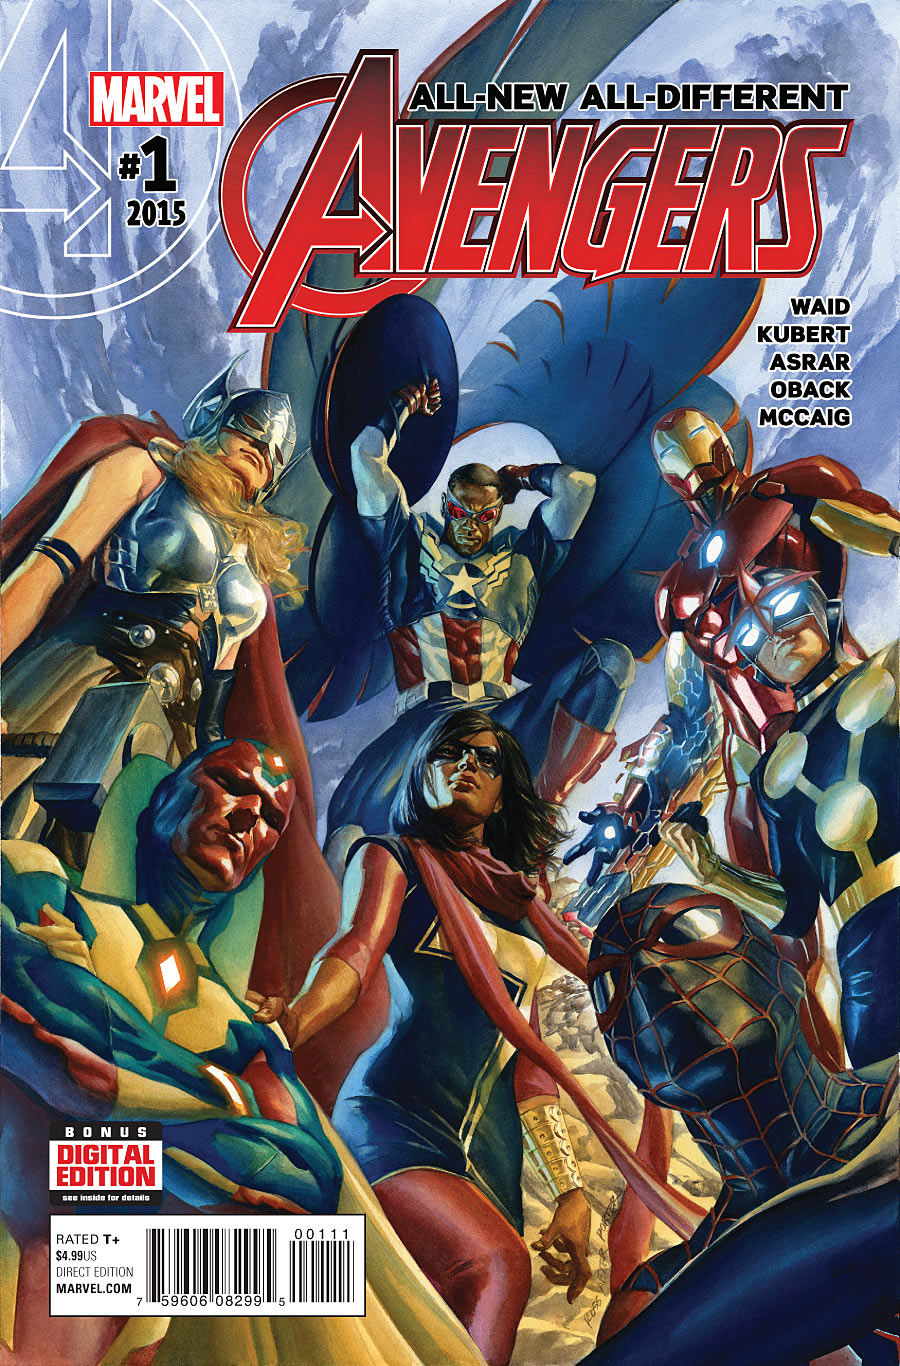 All New All Different Avengers Vol 1 2: All-New, All-Different Avengers Vol 1 1